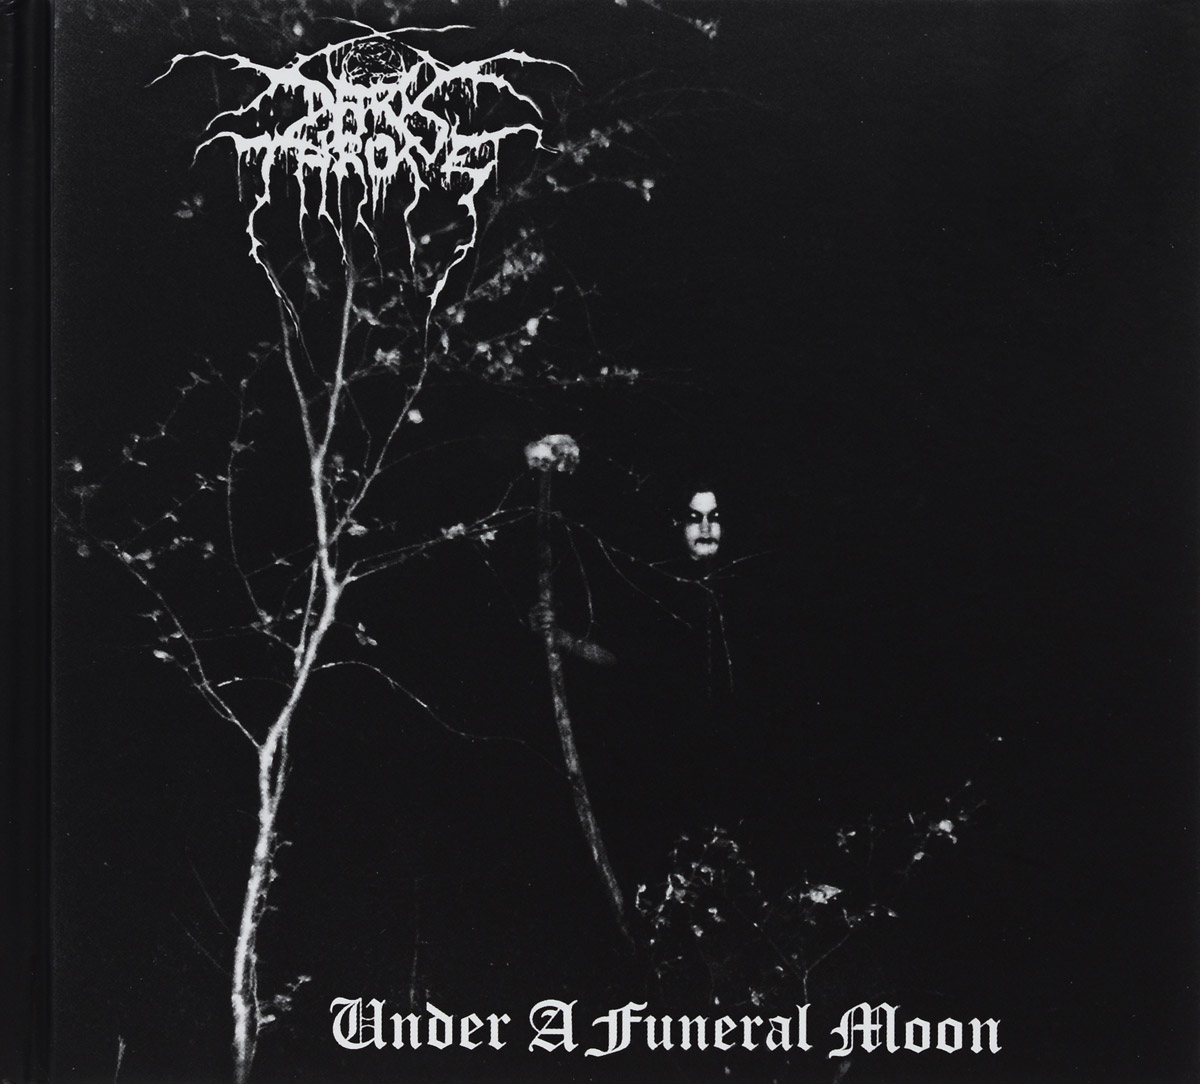 Darkthrone Darkthrone. Under A Funeral Moon. Special Edition (2 CD) zenfone 2 deluxe special edition